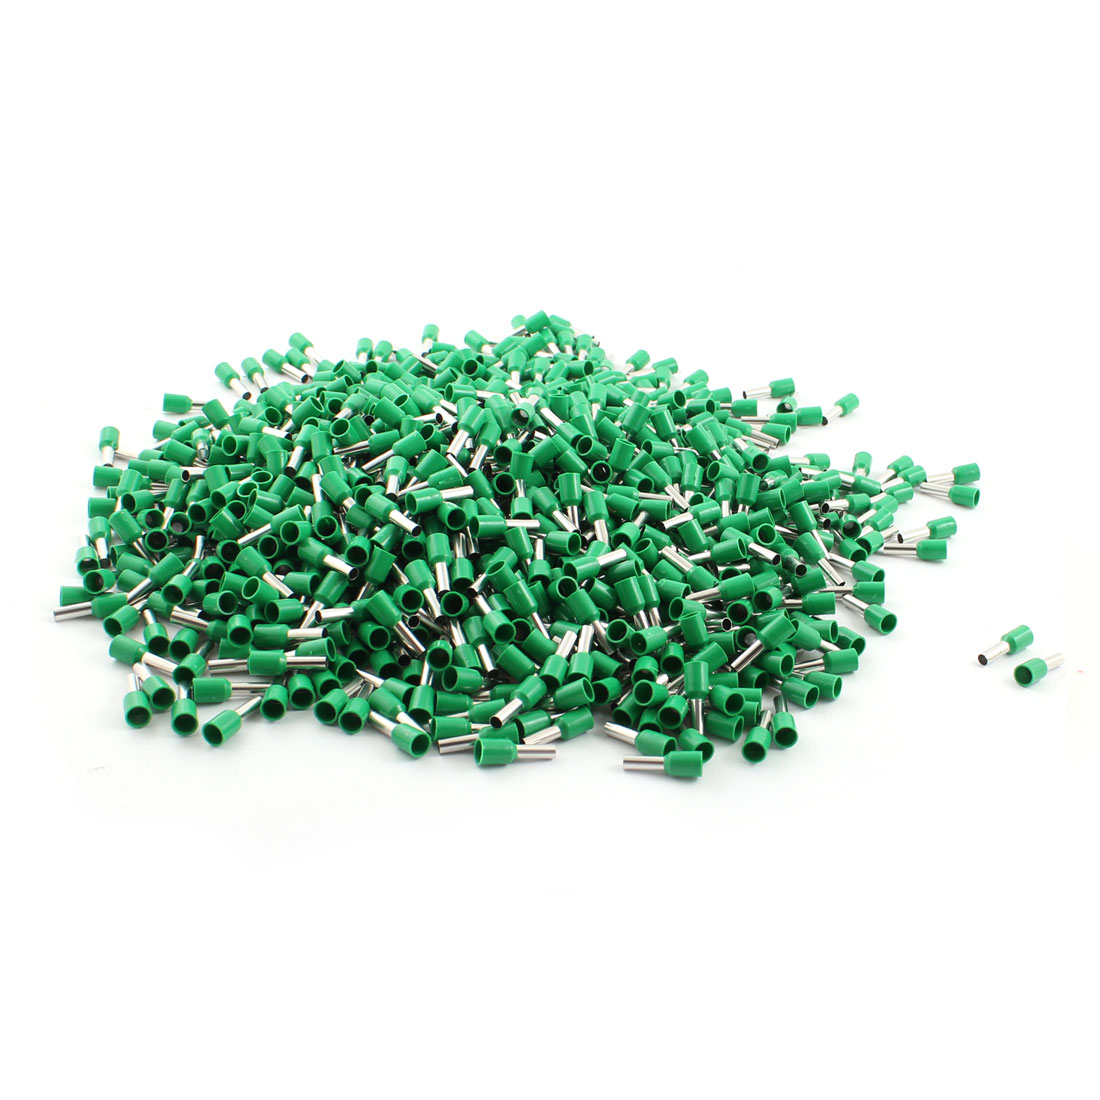 1000Pcs E4009 12AWG Green Tube Tublar Style Plastic Insulated Cable Wire Ends Terminals